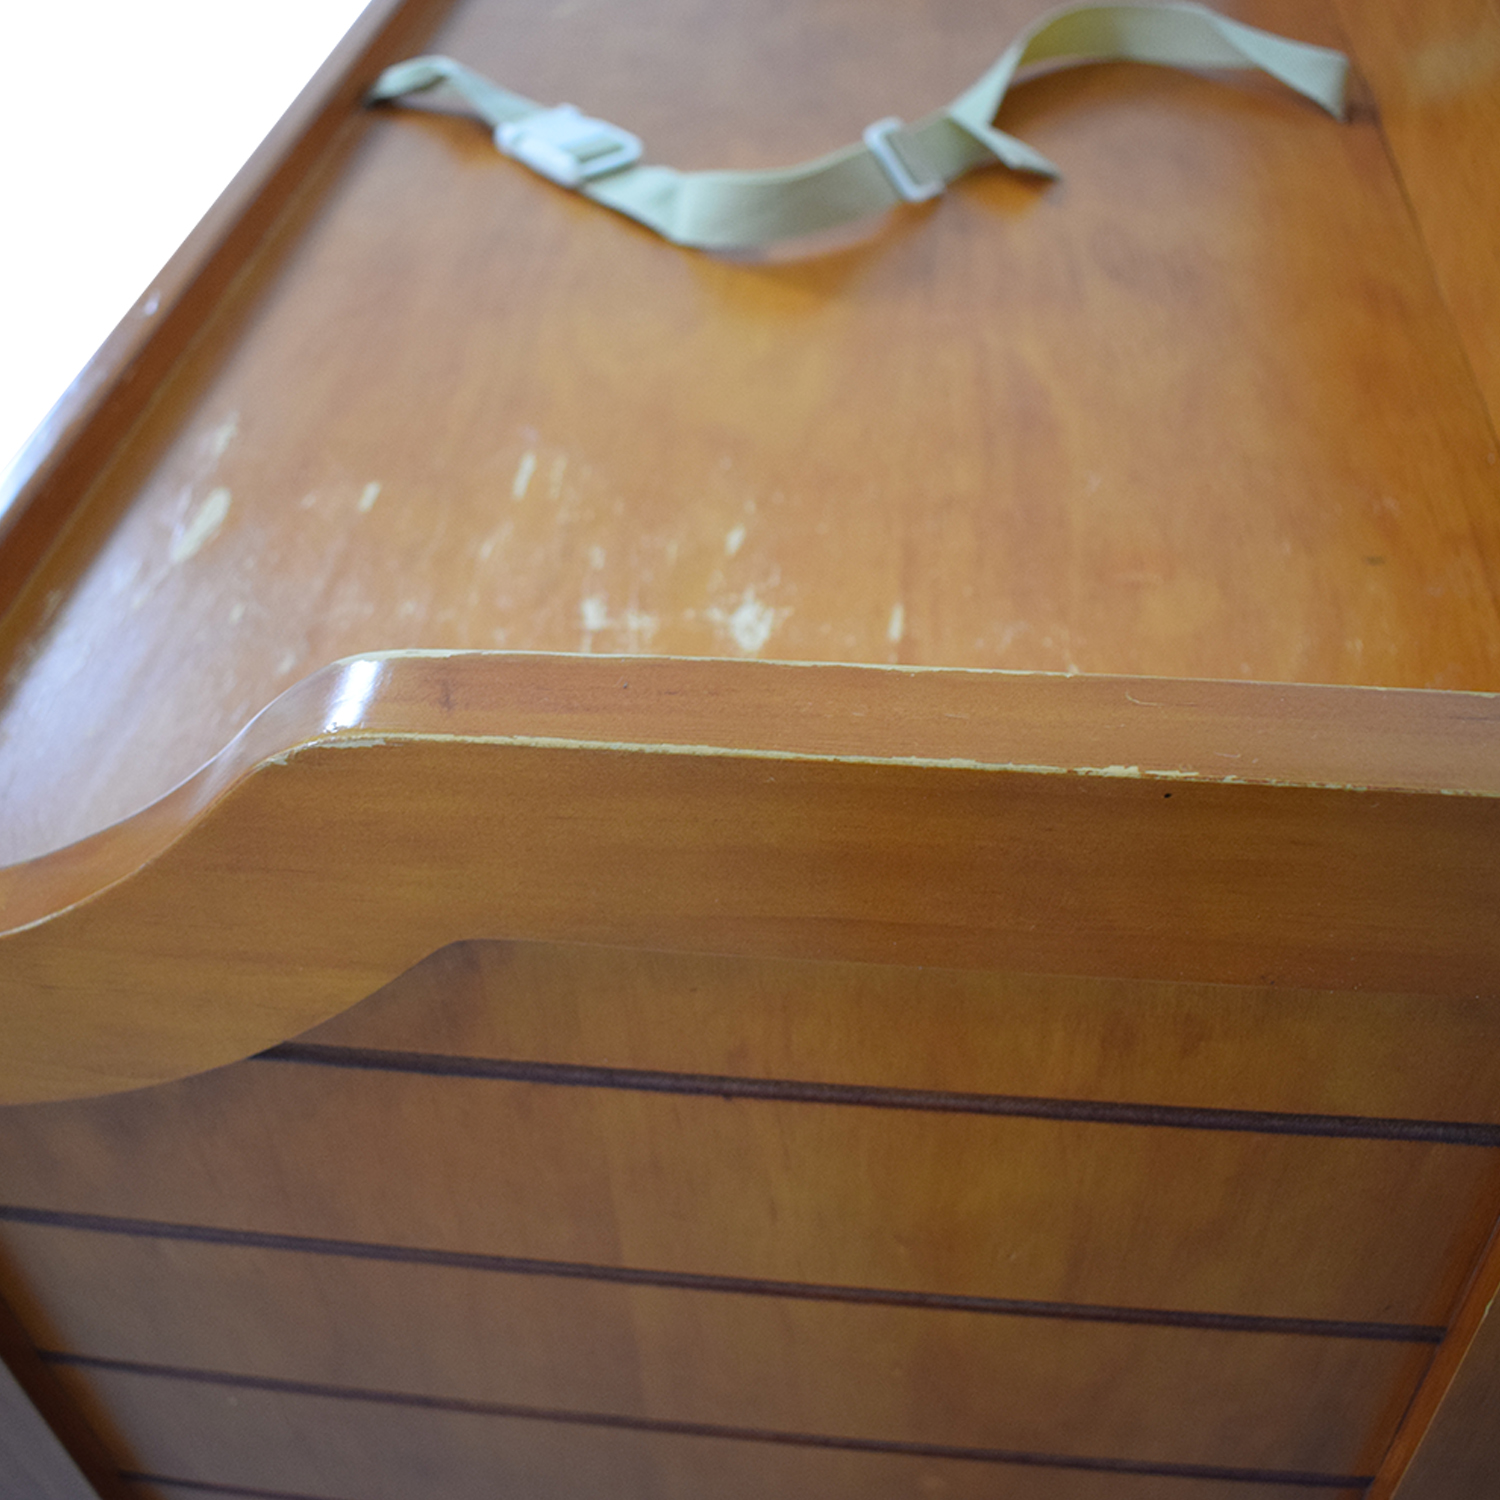 Pottery Barn Kids Pottery Barn Kids Ultimate Changing Table dimensions